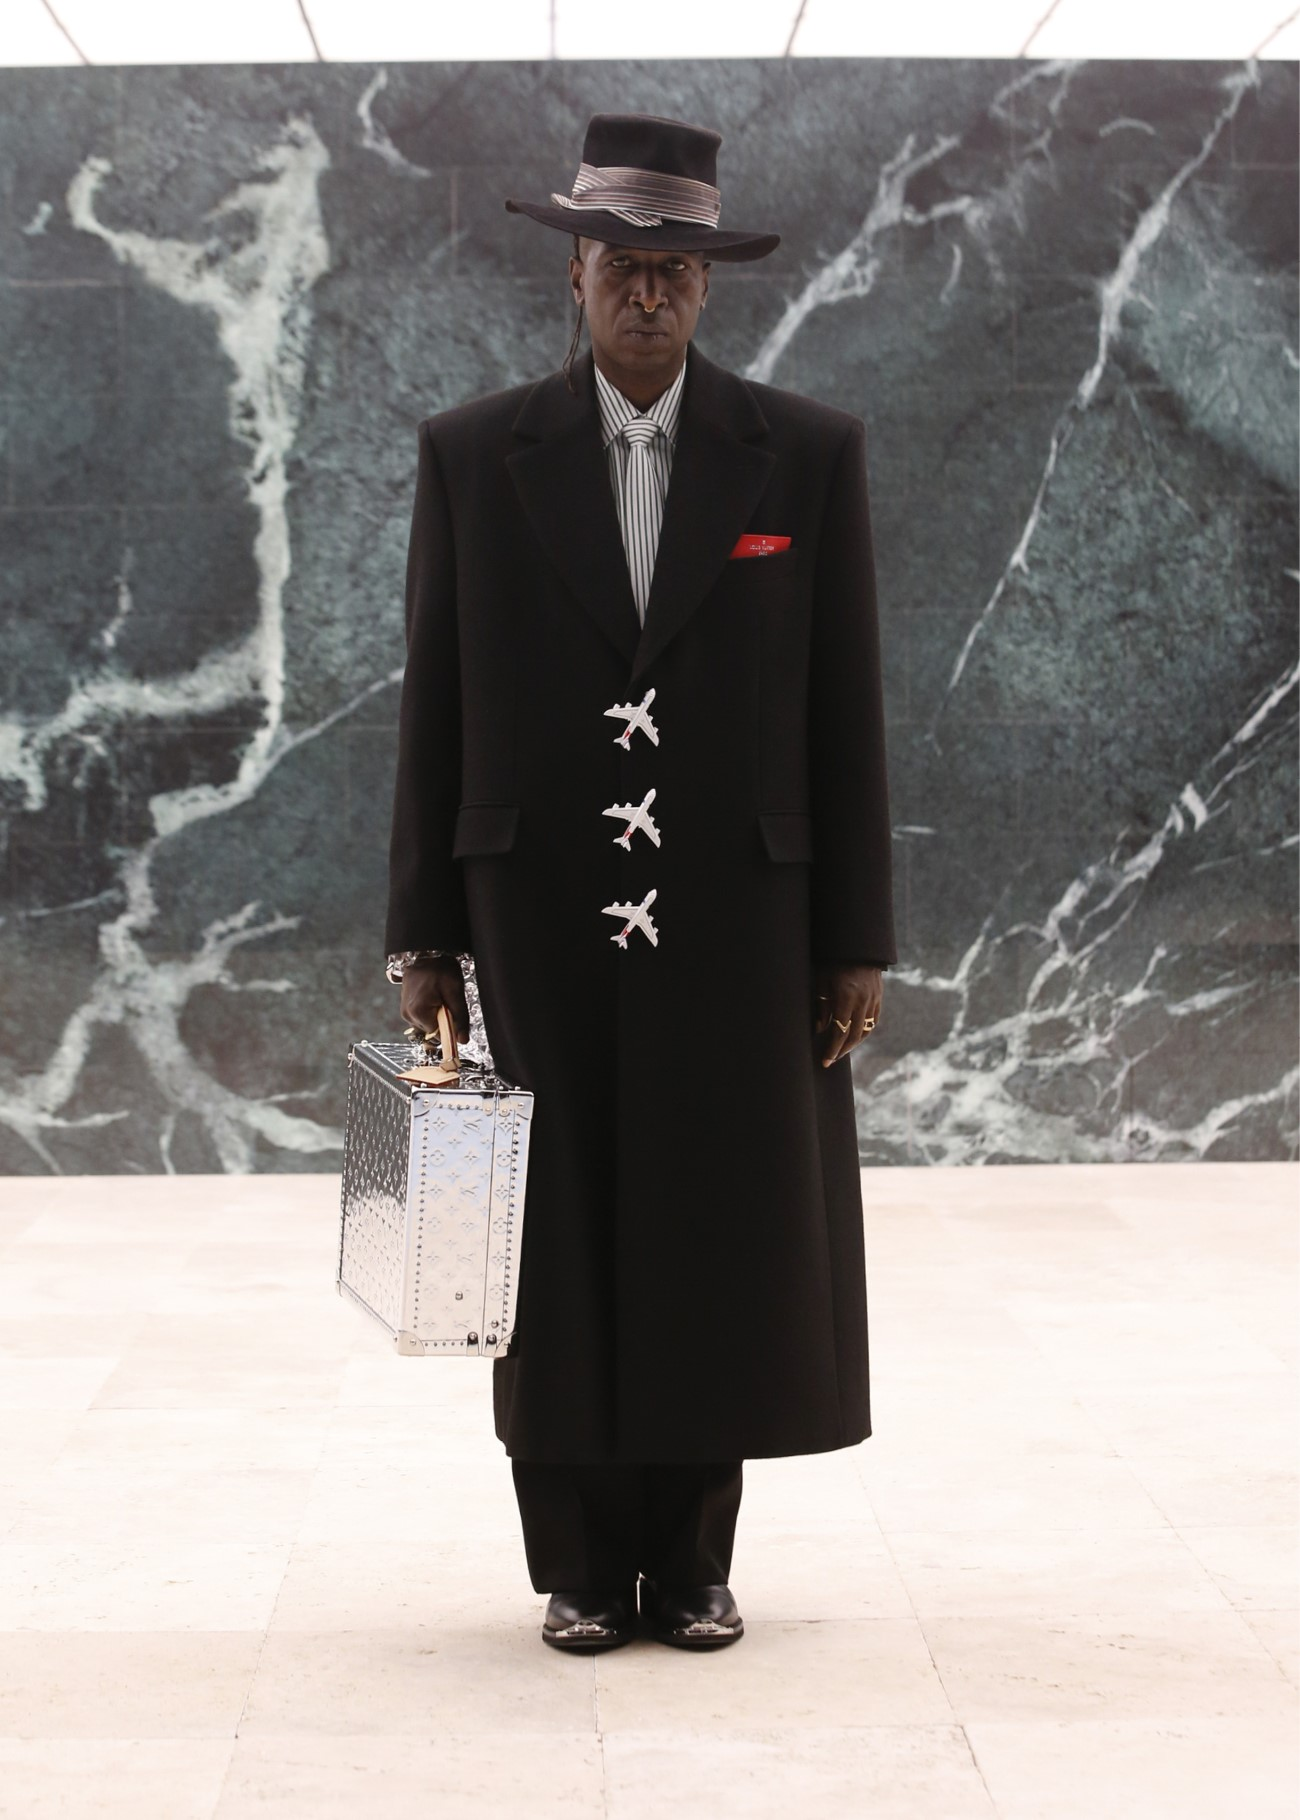 Louis Vuitton - Automne-Hiver 2021 - Paris Fashion Week